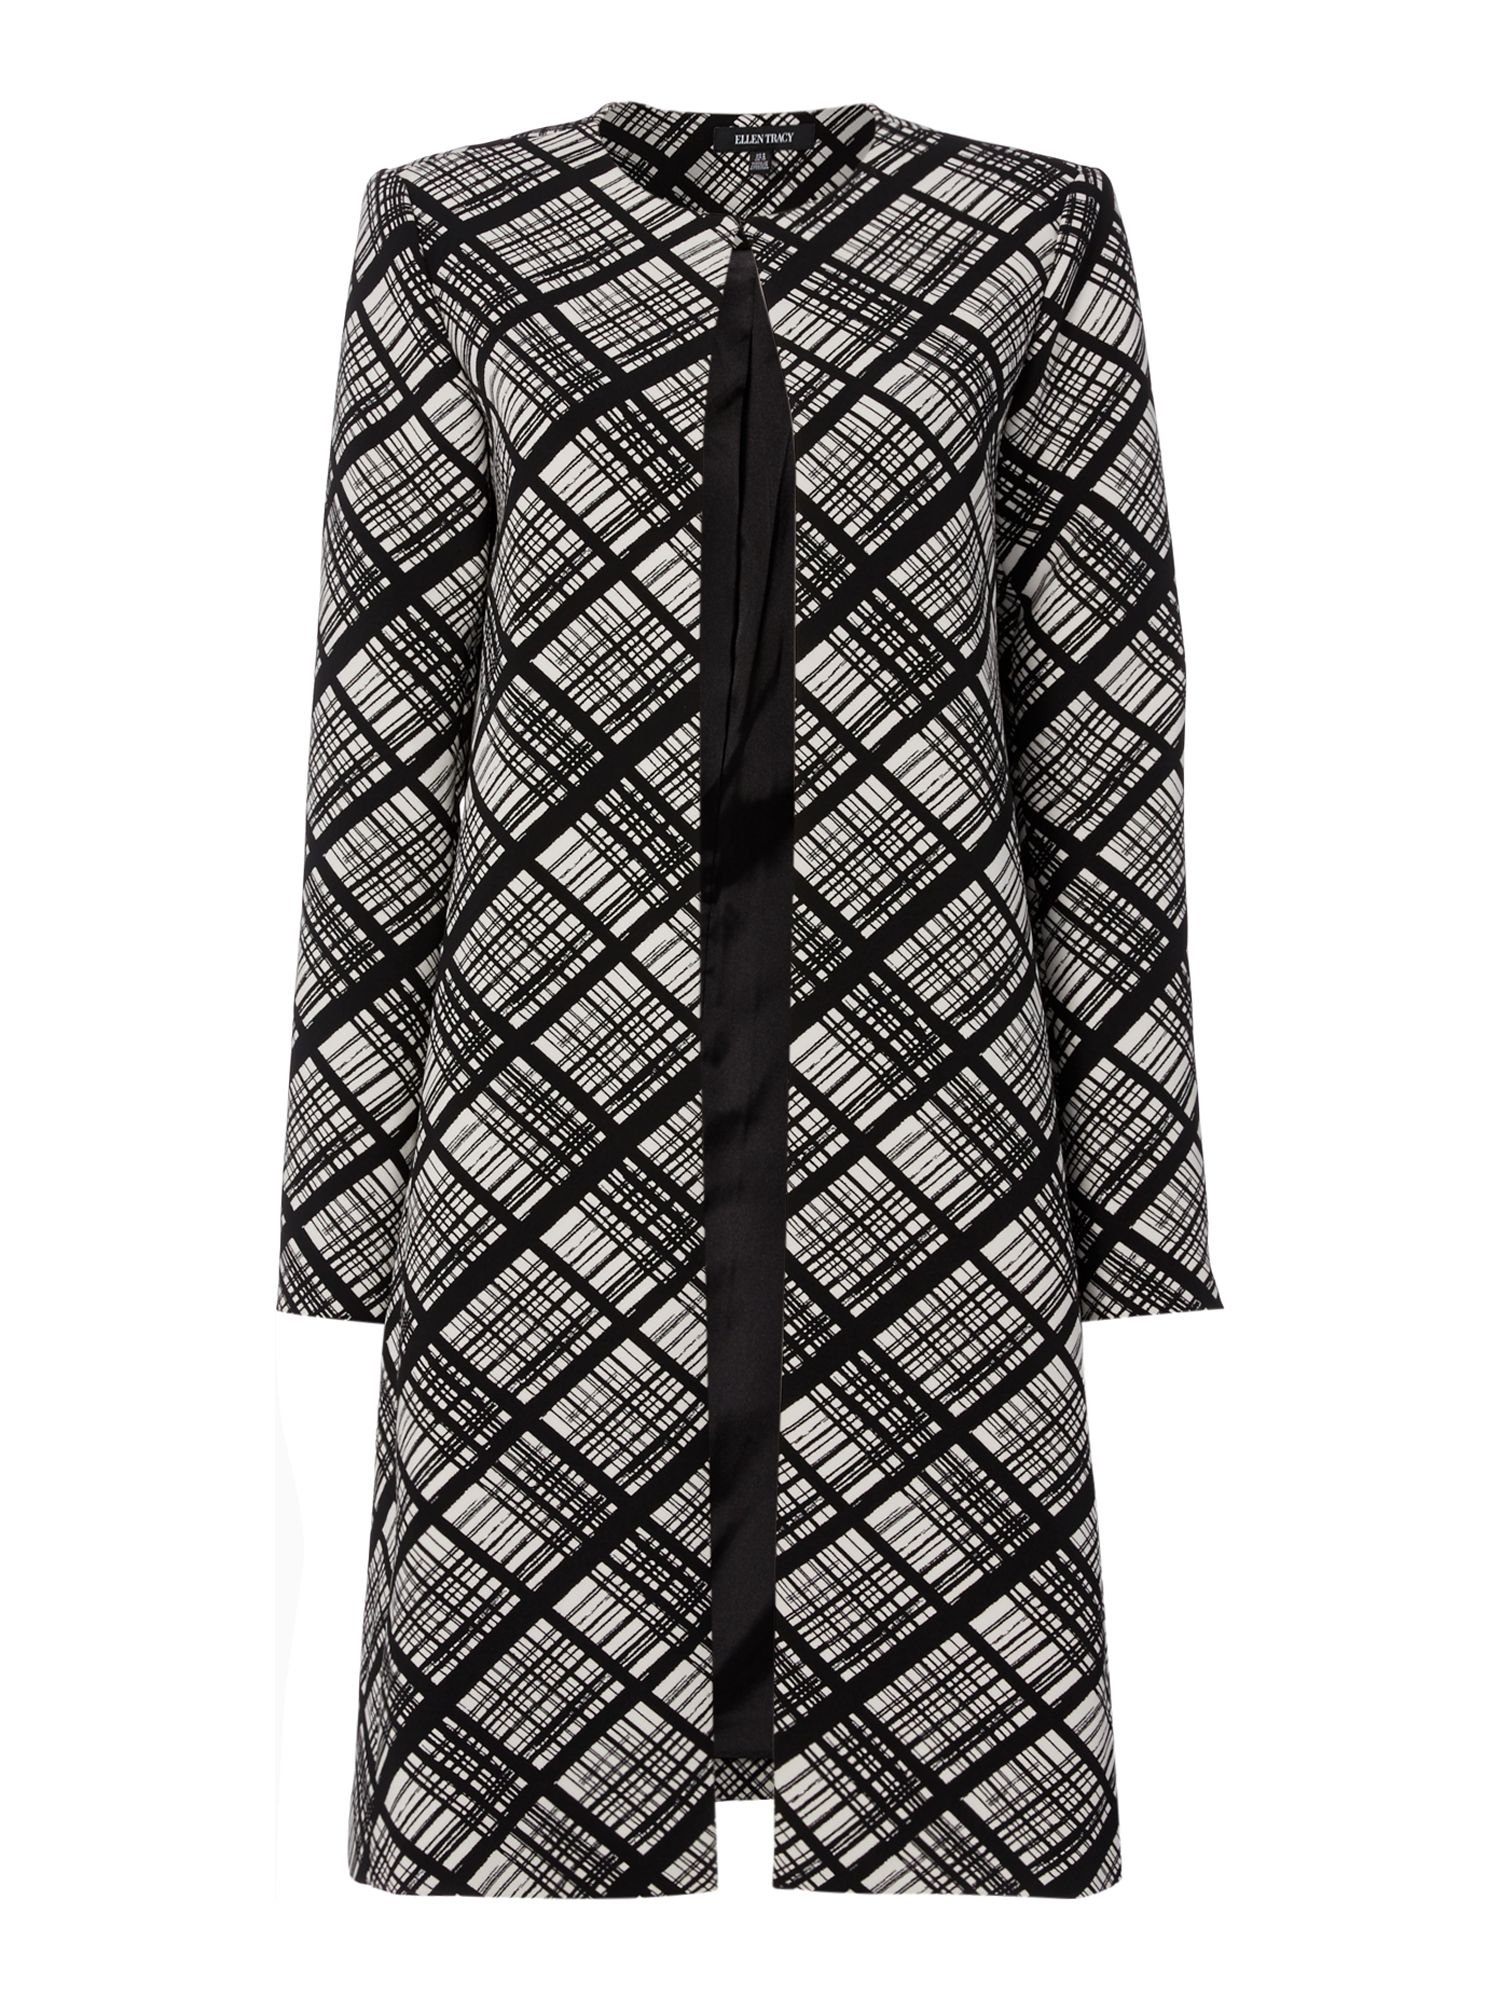 Ellen Tracy Double crepe coat, Black/White